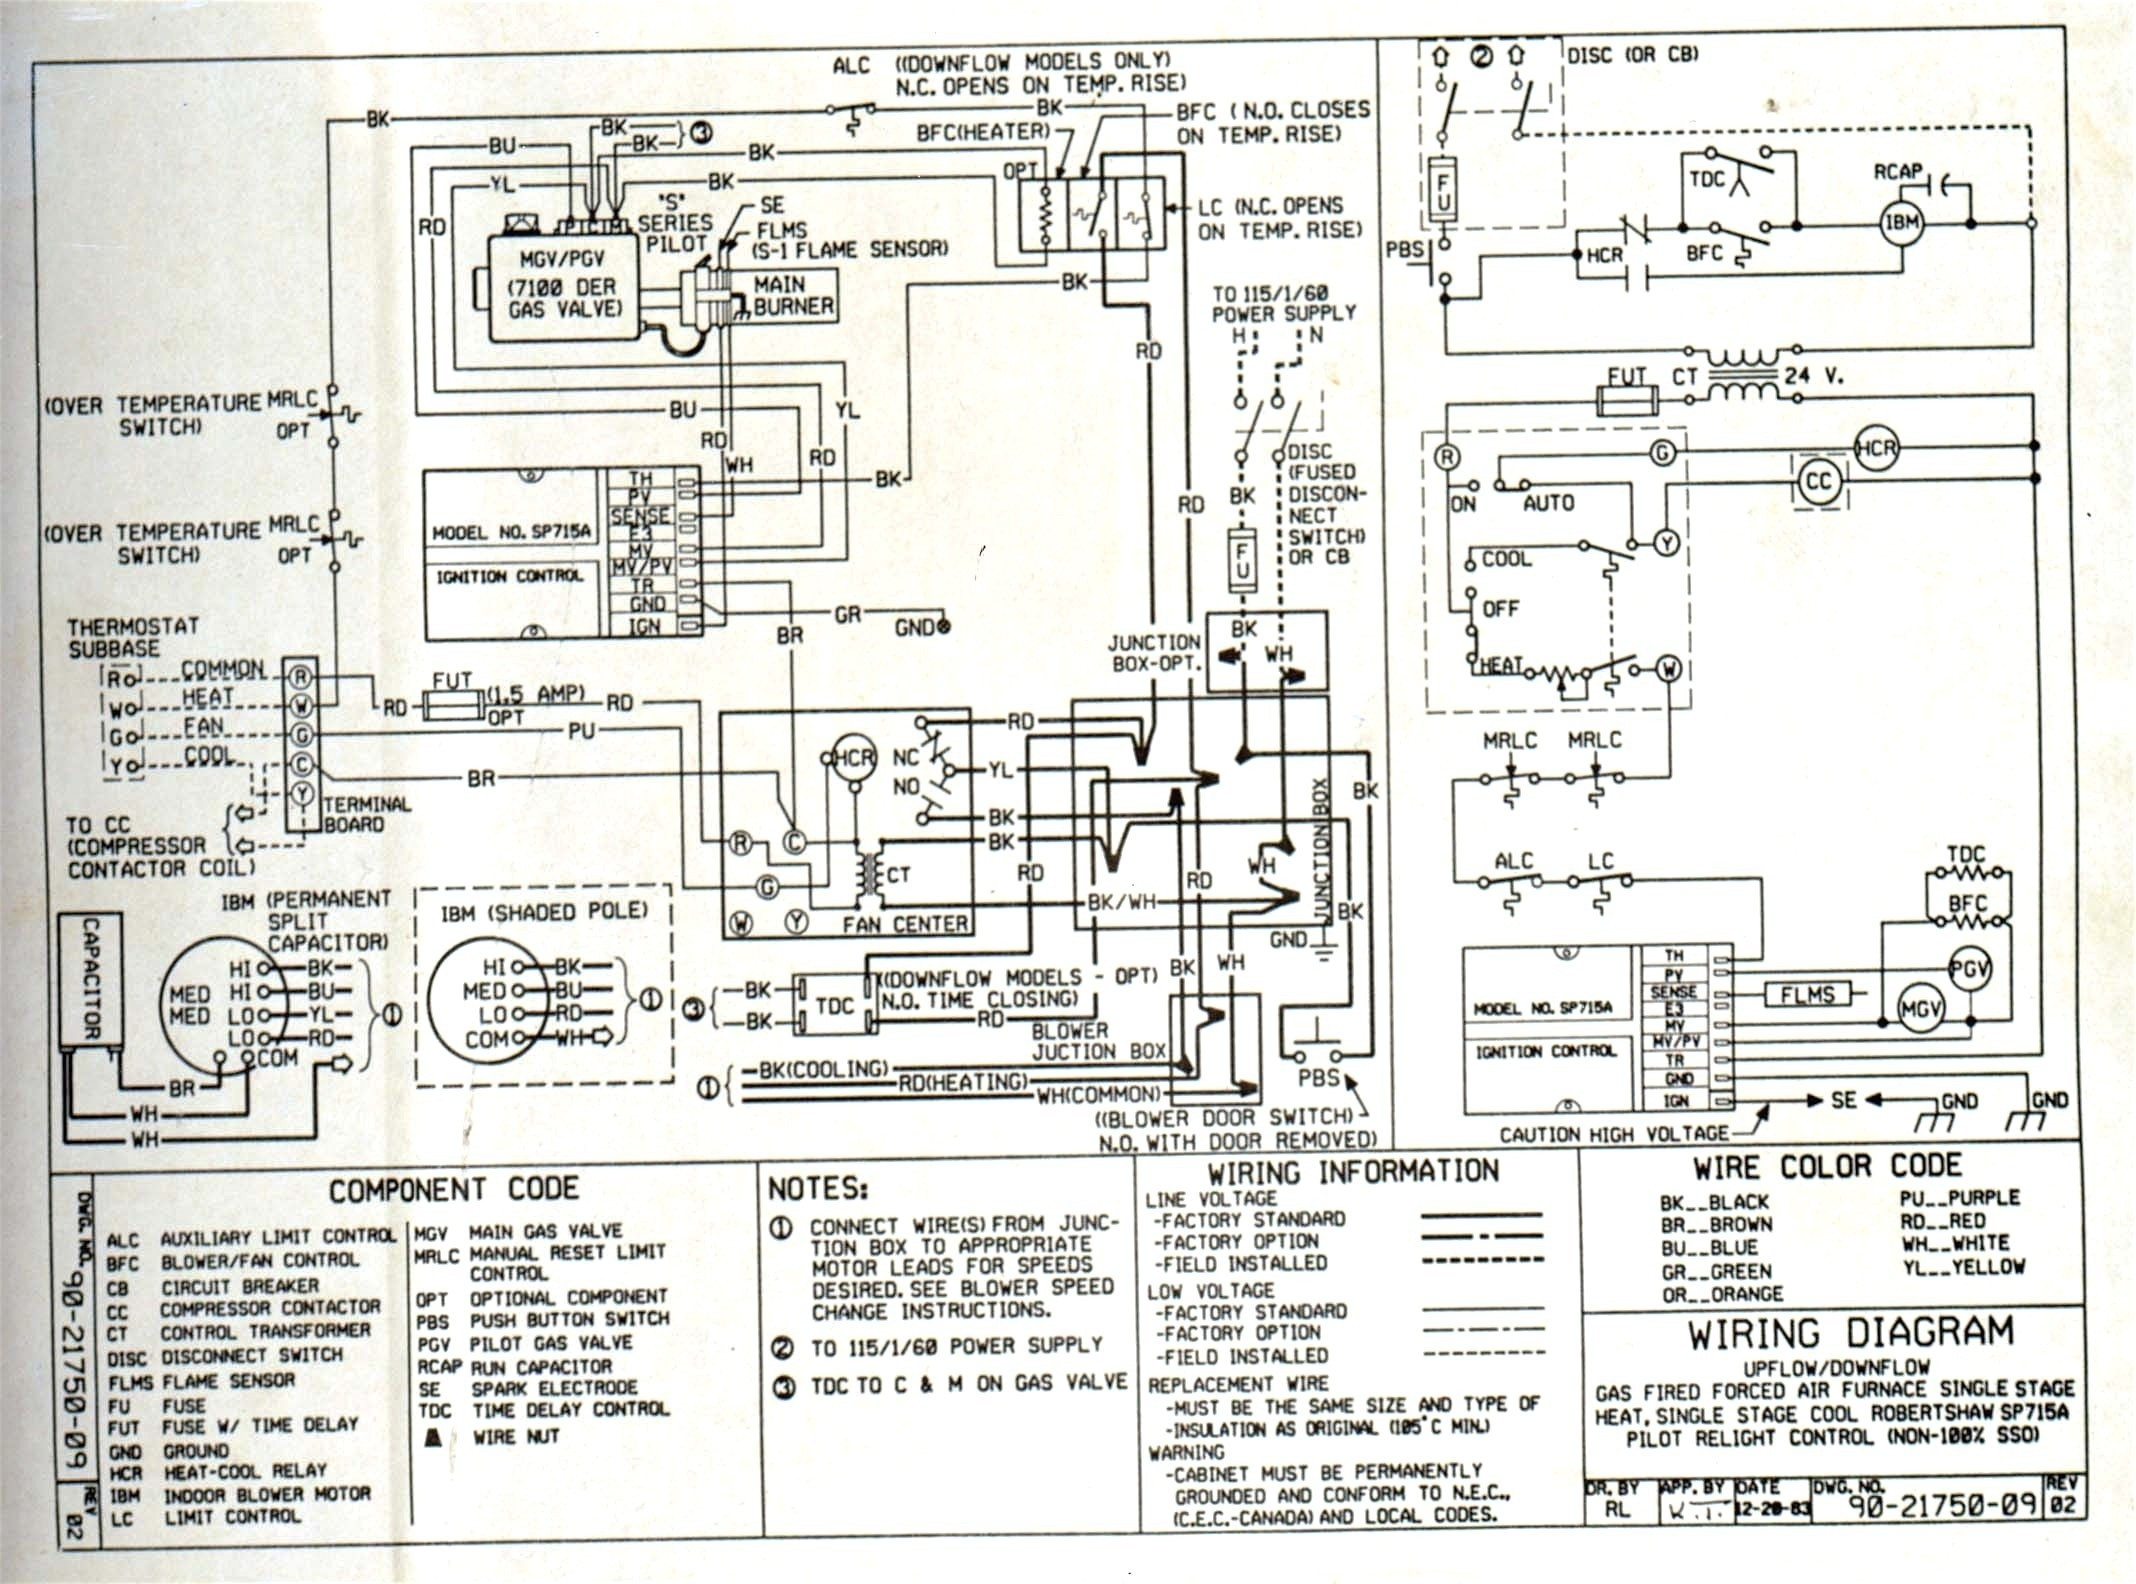 air conditioner wiring diagram picture Download-Wiring Diagram for Automotive Ac New Wiring Diagram Air Conditioning Pressor Fresh Wiring Diagram Ac 16-g